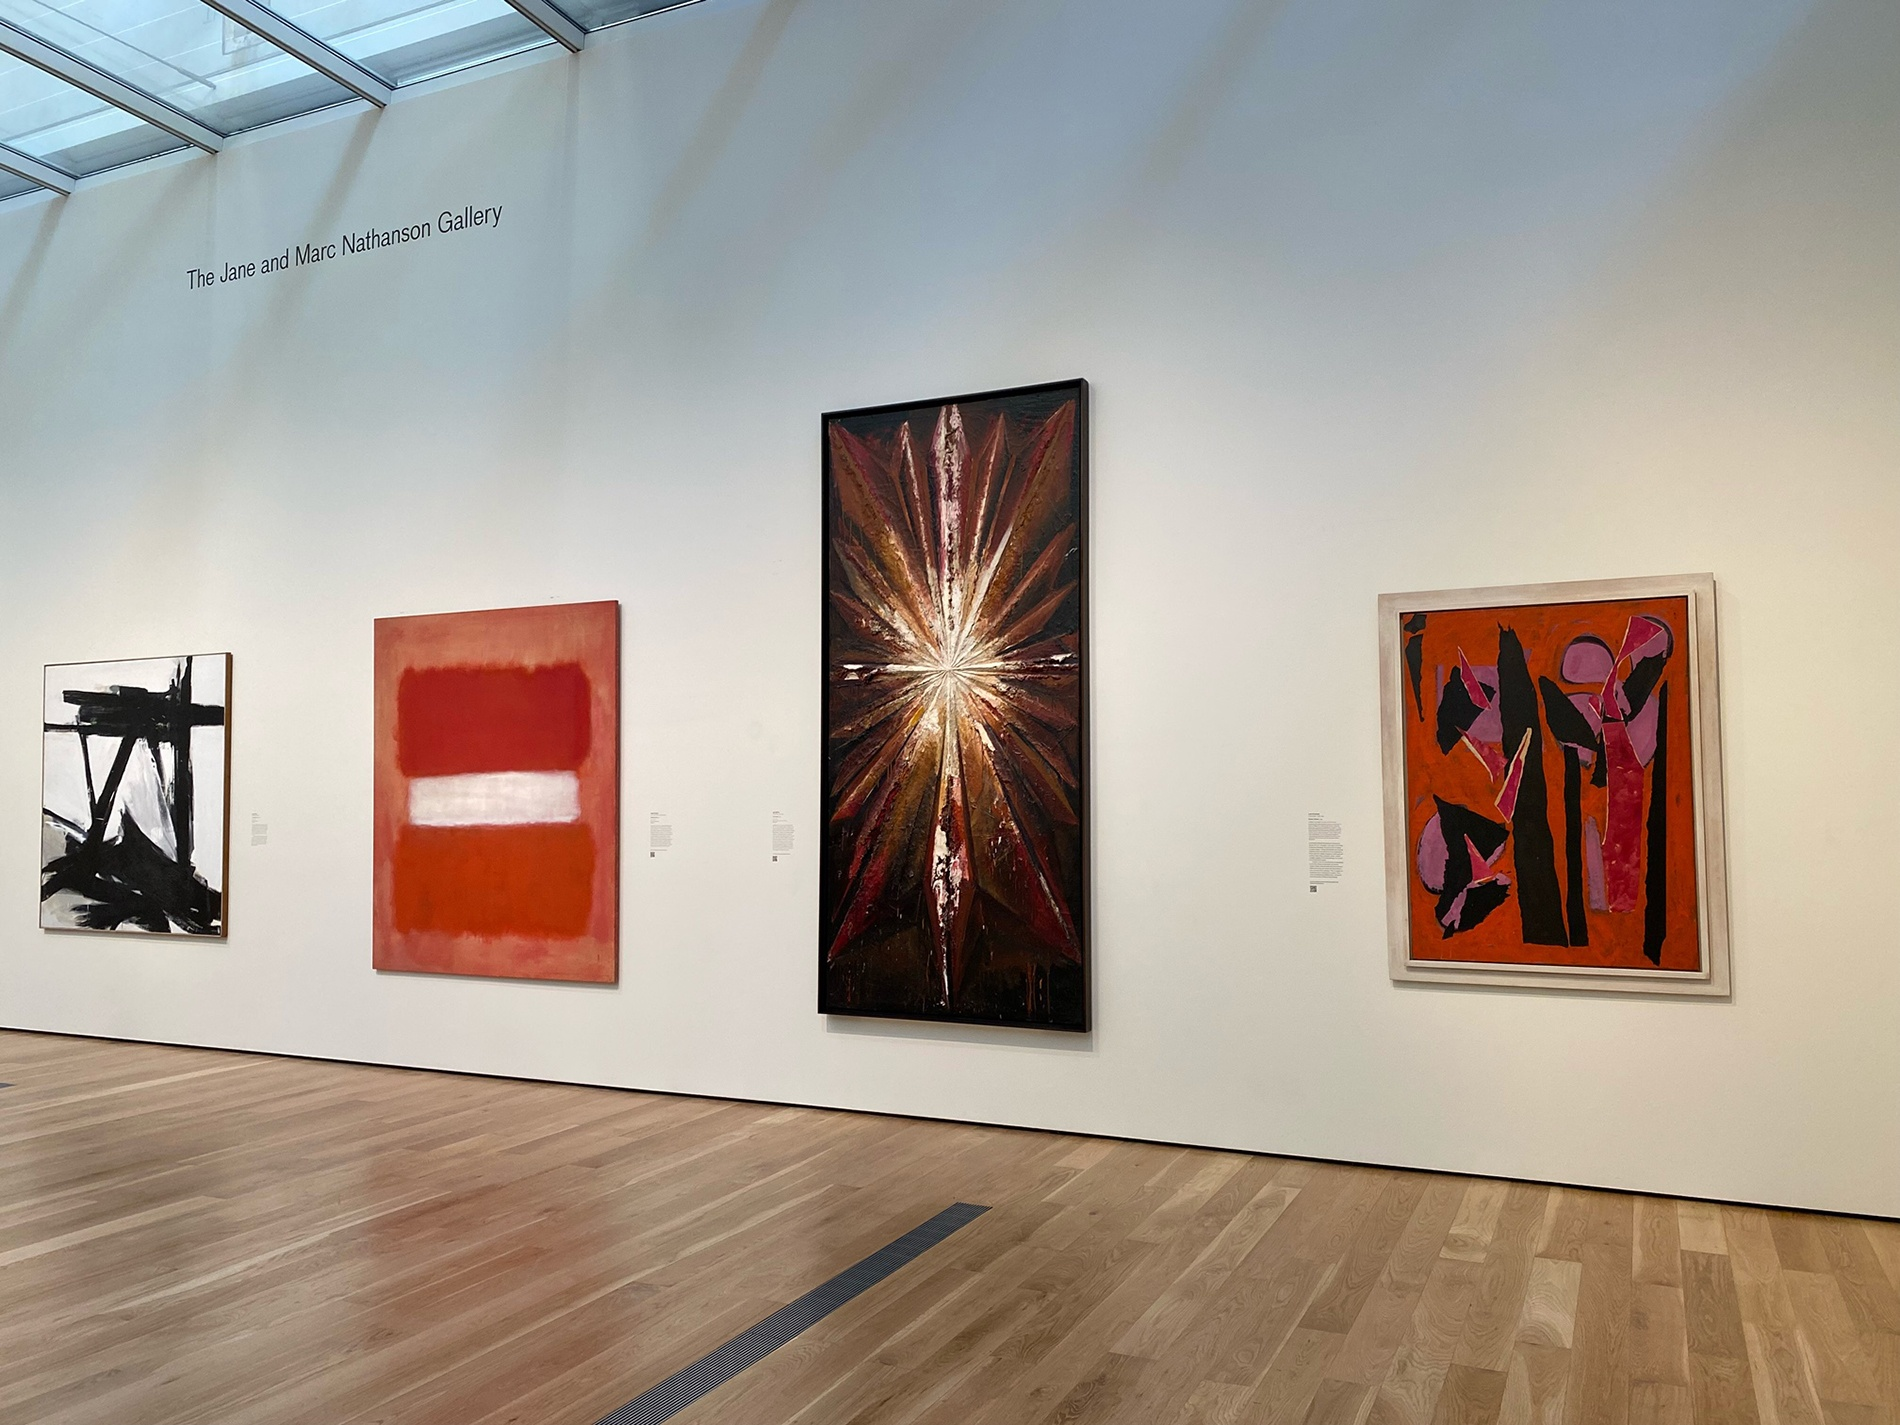 The Jewel in Modern Art exhibition at LACMA